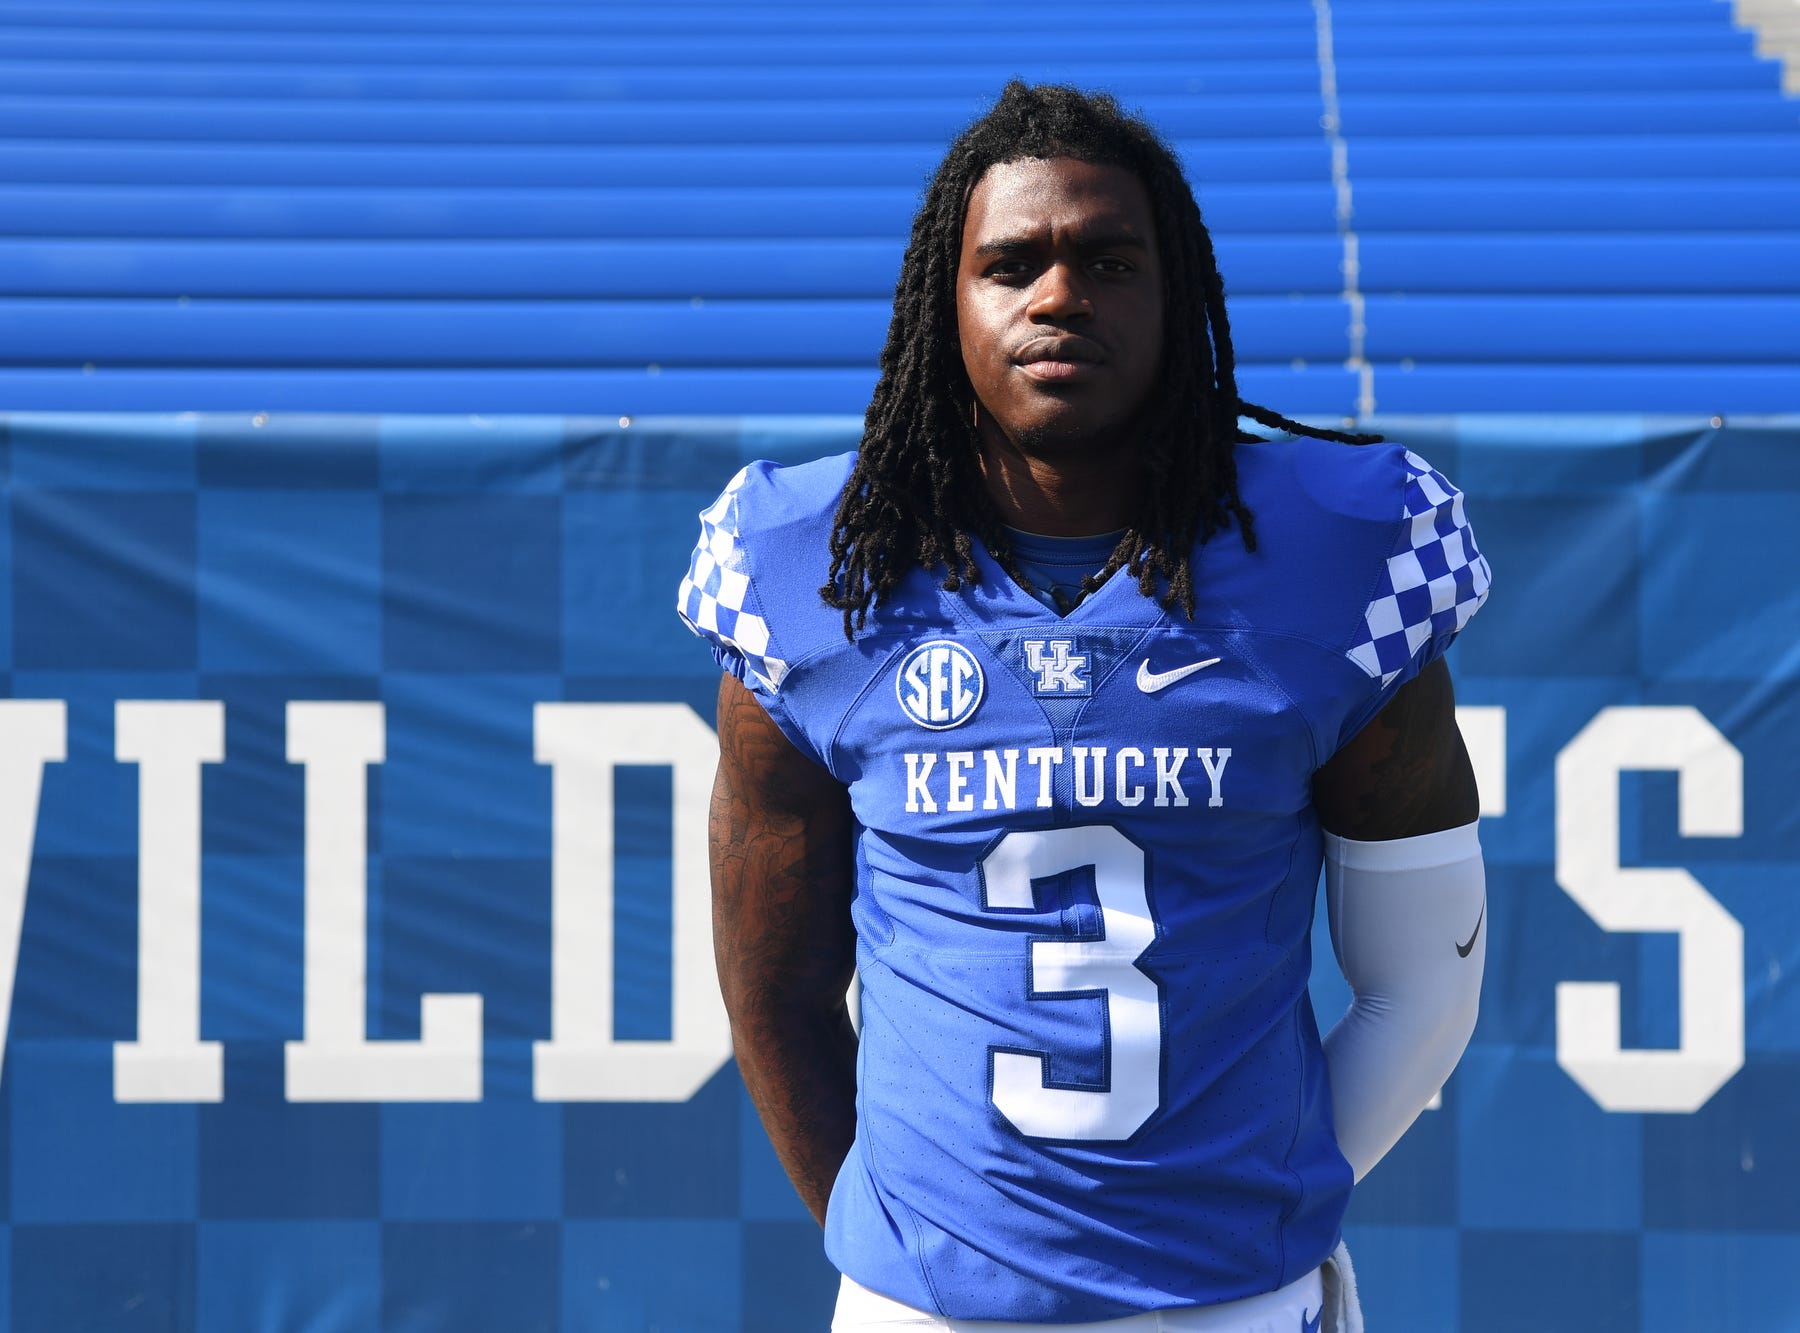 QB Terry Wilson during the UK football media day at Kroger Filed in Lexington, Kentucky on Friday, August 3, 2018.